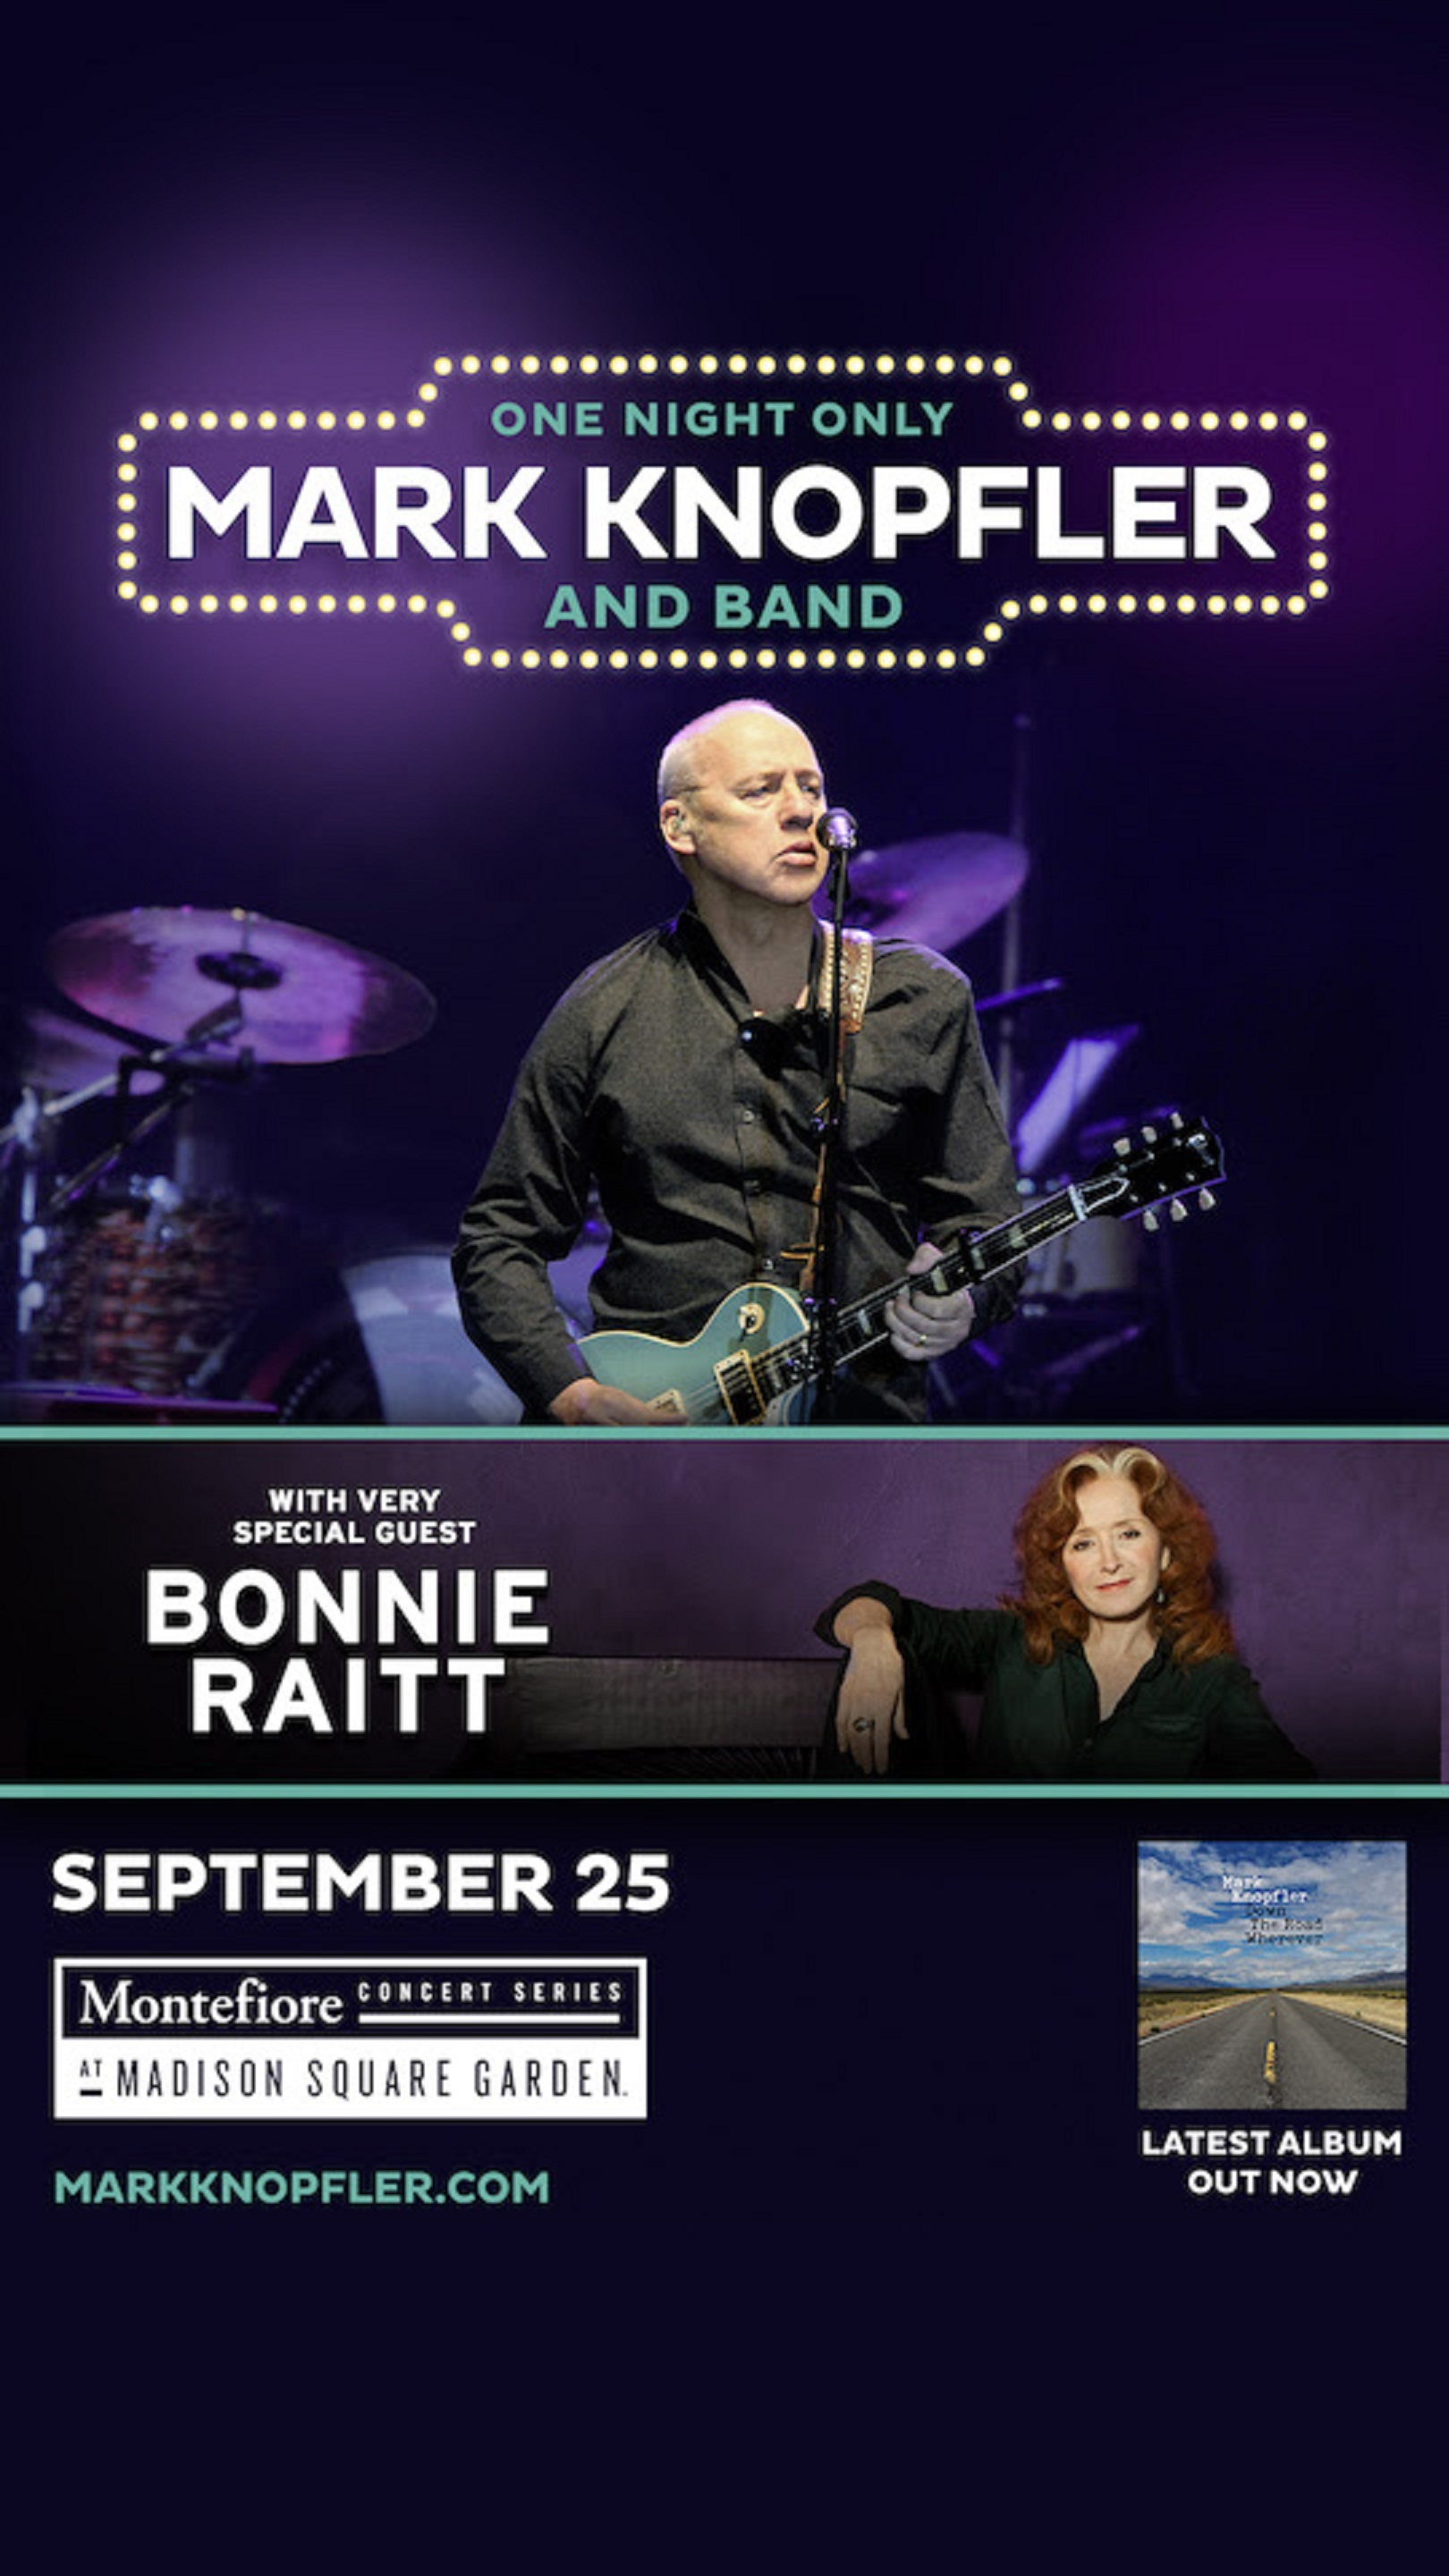 Mark Knopfler adds Madison Sq Garden show 9/25 with special guest Bonnie Raitt